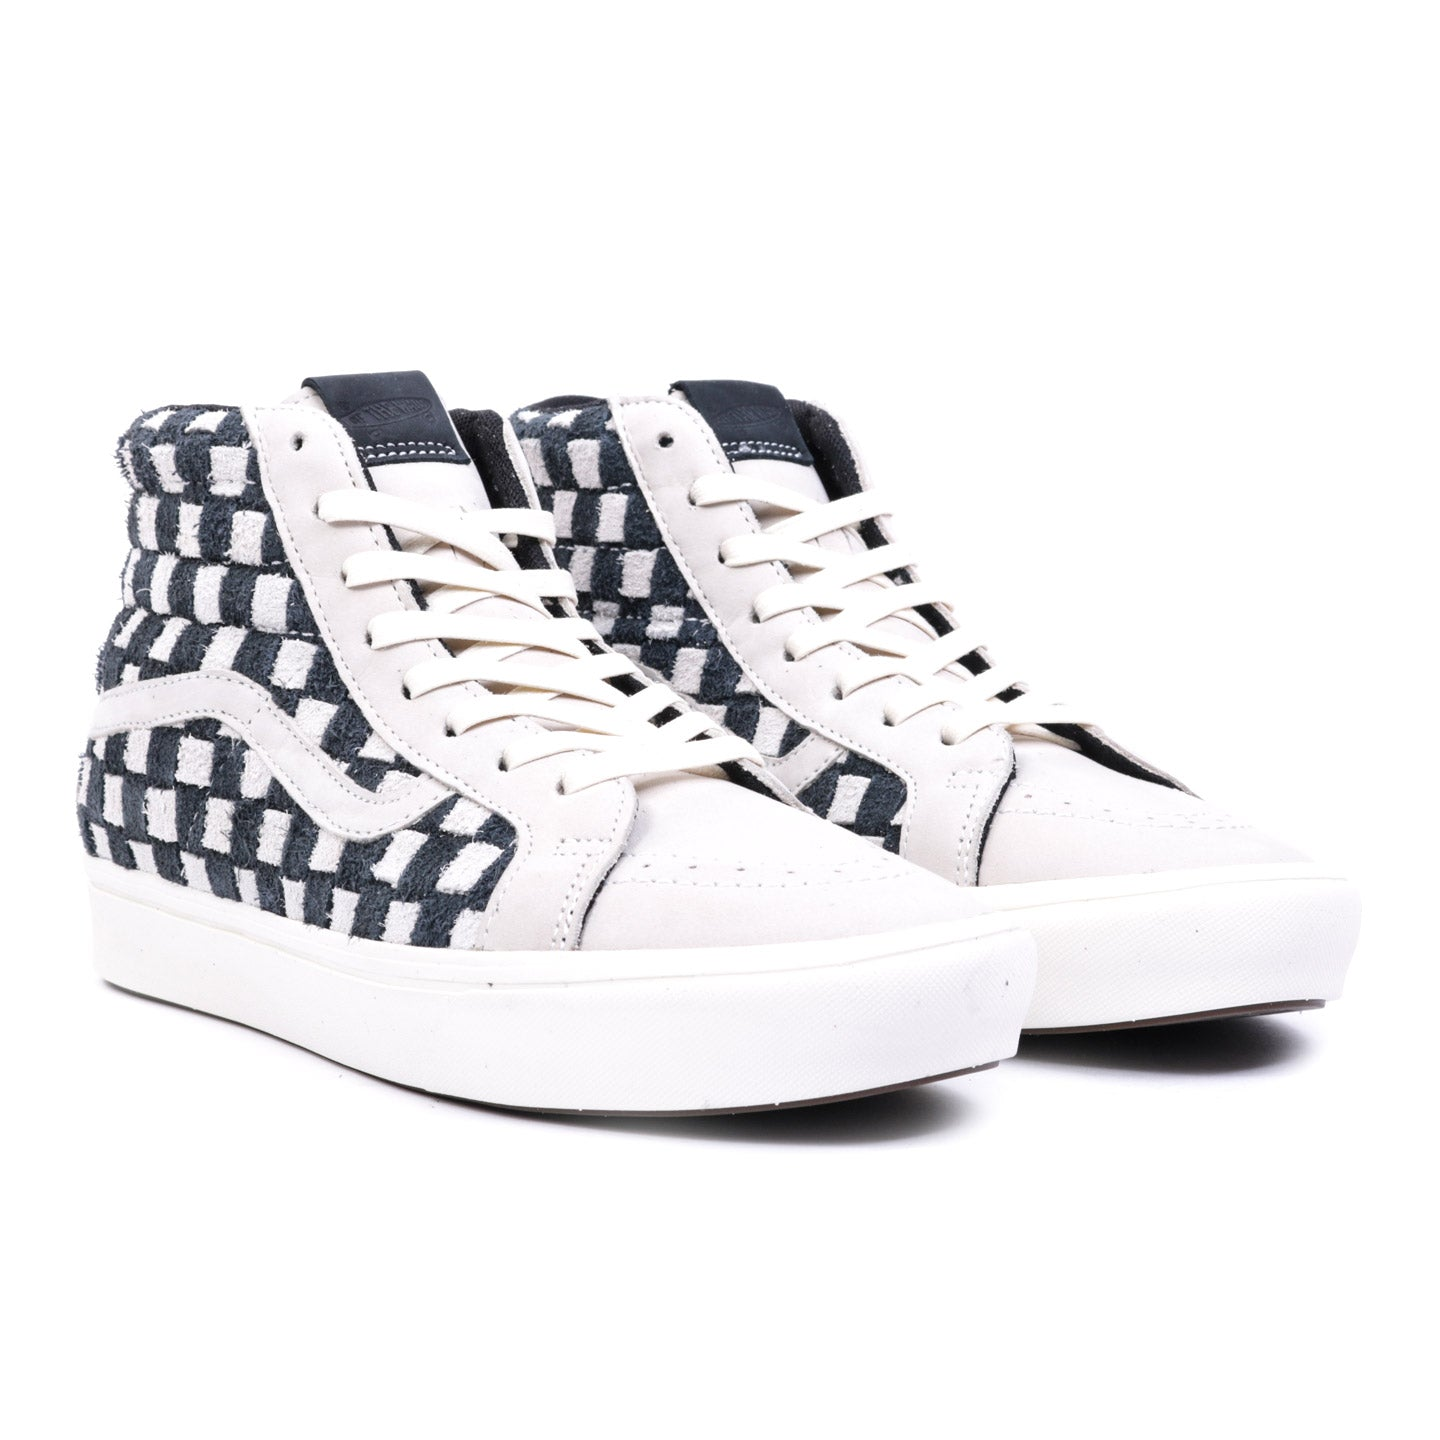 VAULT BY VANS COMFYCUSH SK8-HI REISSUE LX OATMEAL / BLACK